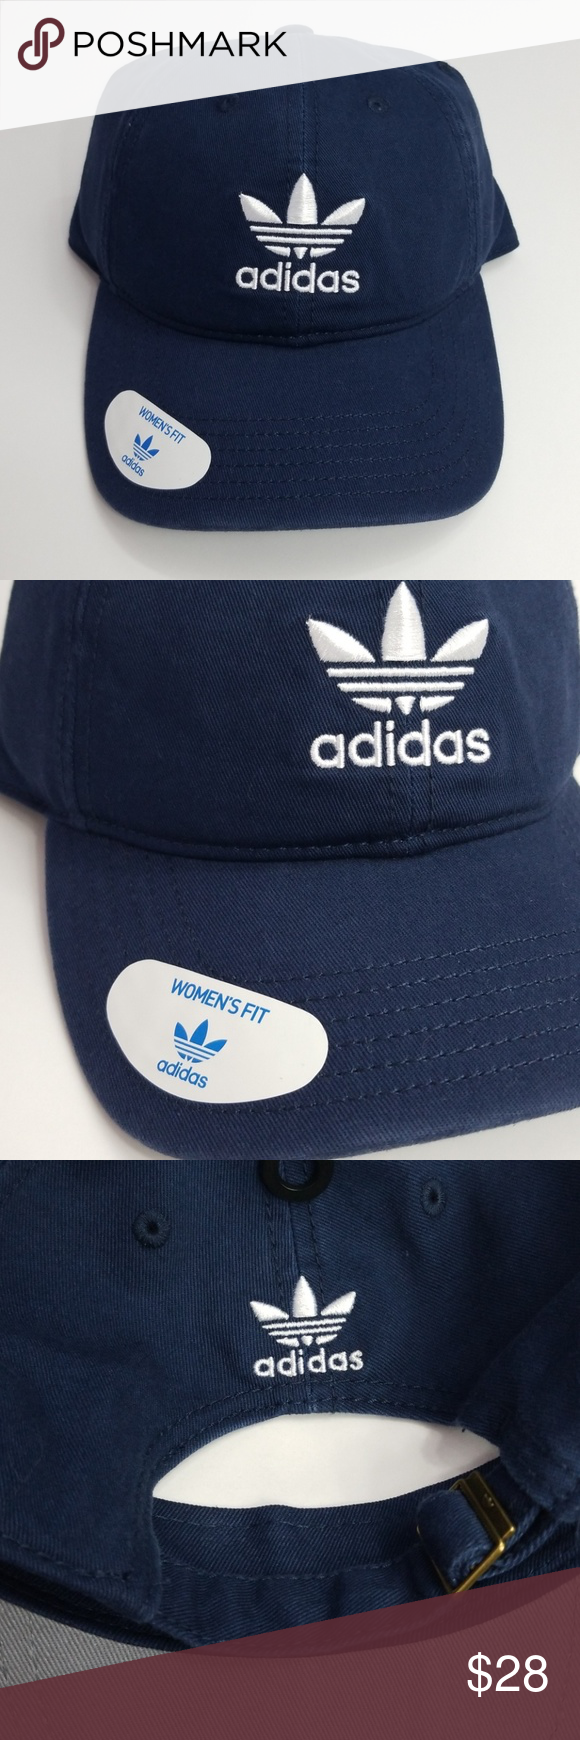 Adidas Originals Womens Fit Hat Adjustable Fit Hat Womens Fit New With Tags  Color Navy Blue And White adidas Accessories Hats 72250aa75